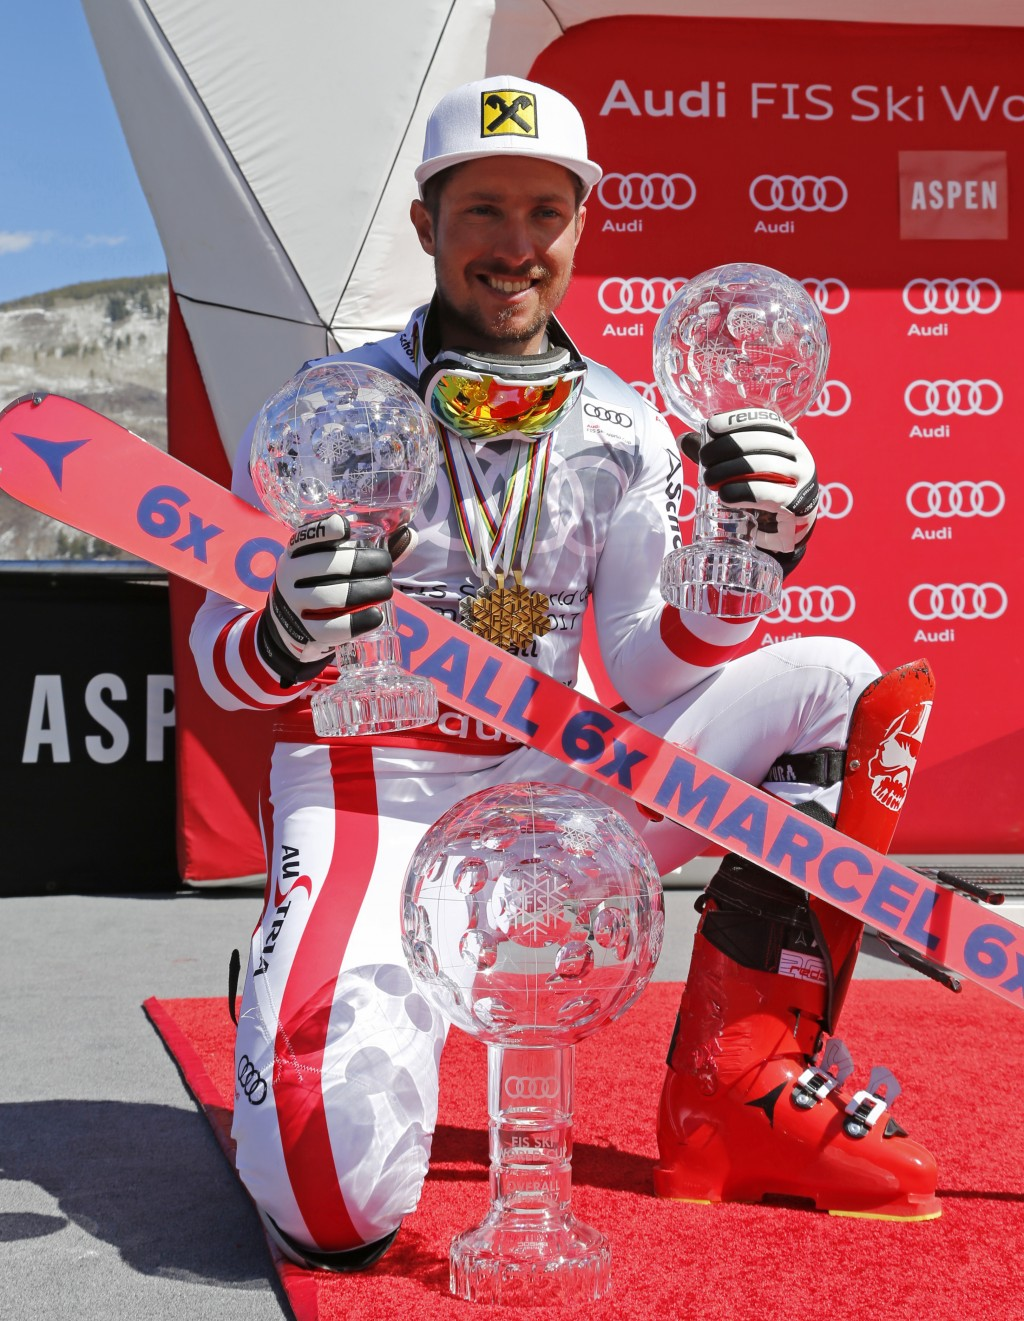 FILE - In this March 19, 2017, file photo, World Cup overall men's 2017 champion Austria's Marcel Hirscher poses with his crystal globe trophies after